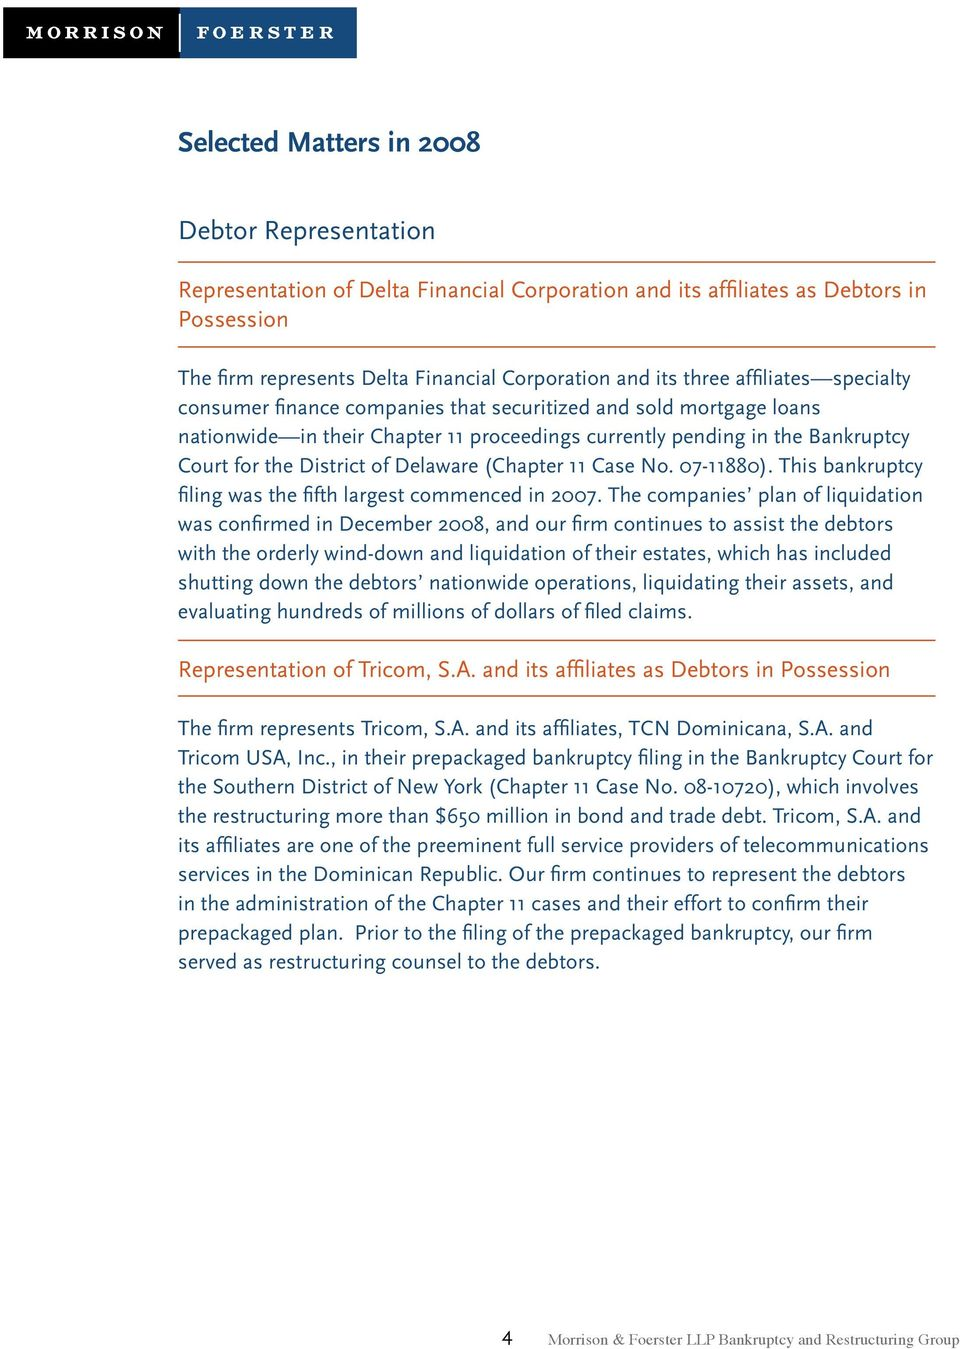 Delaware (Chapter 11 Case No. 07-11880). This bankruptcy filing was the fifth largest commenced in 2007.